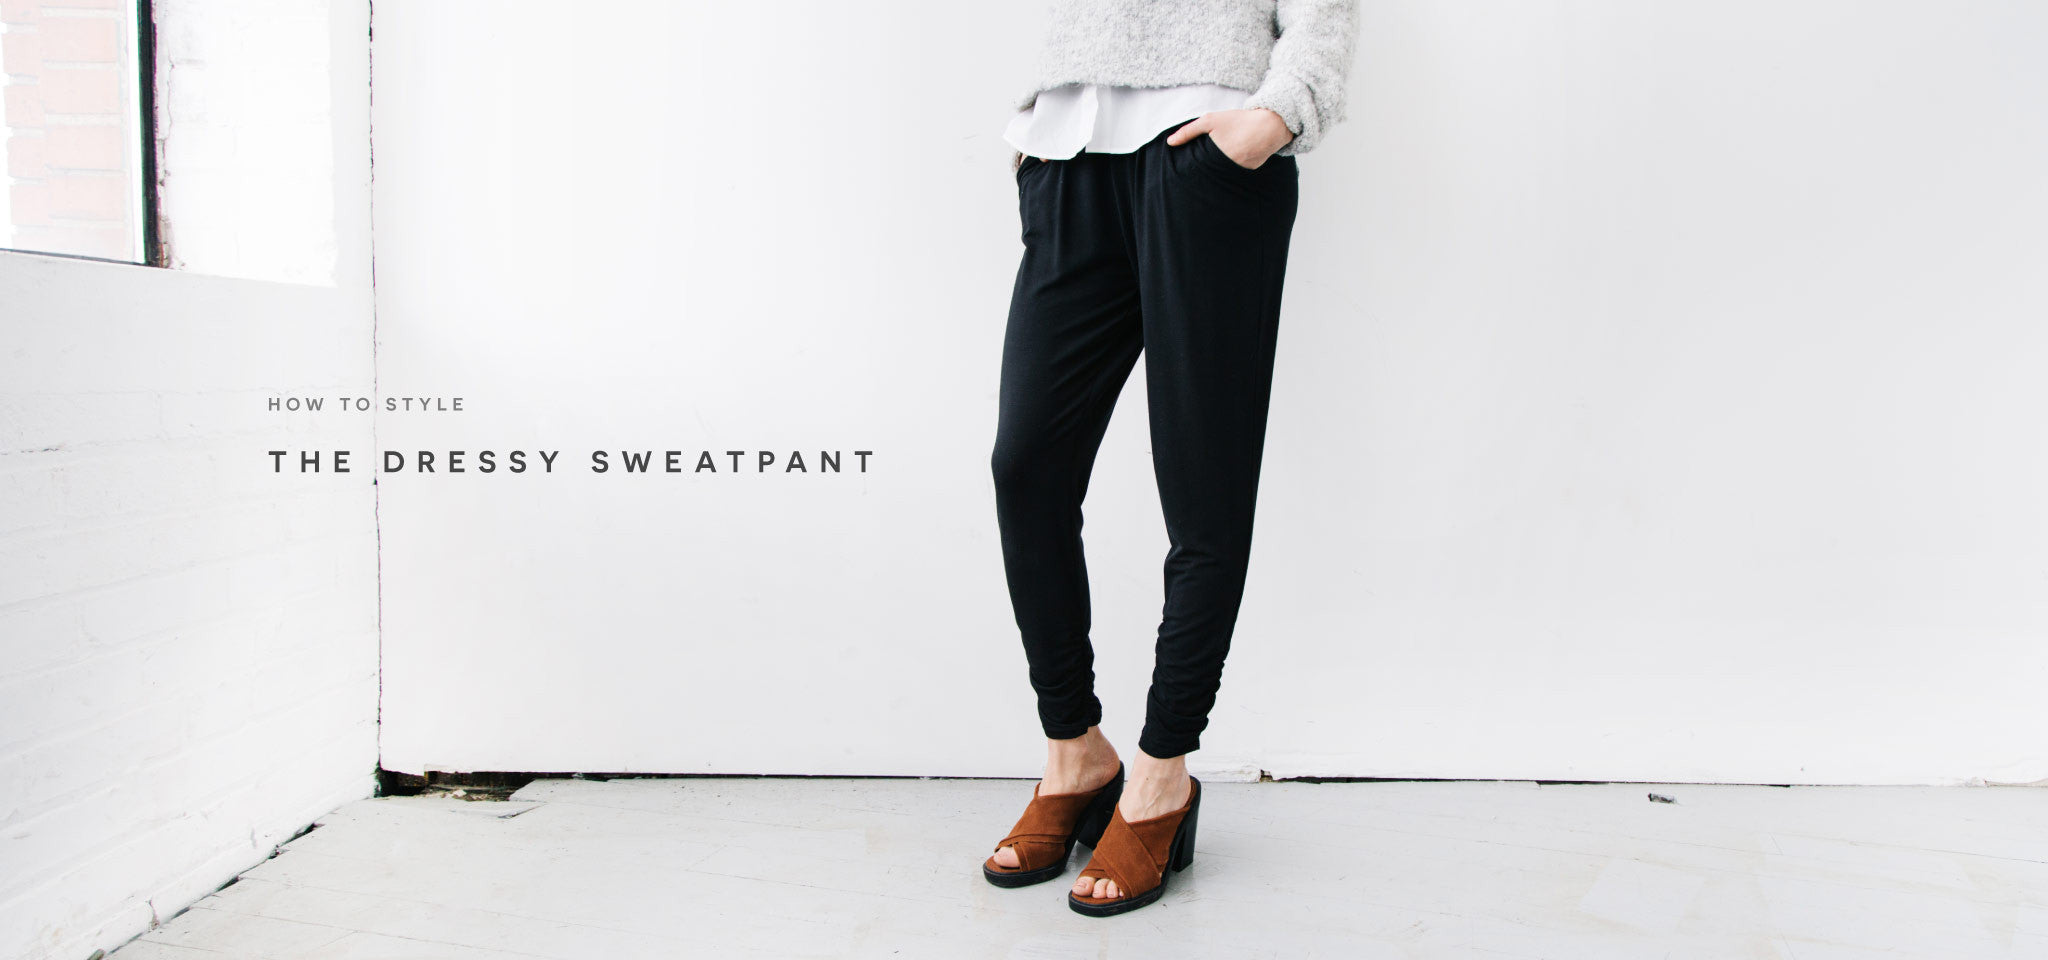 Minimalist Sweatpant for the Everyday Traveler. Ethically made in canada with sustainable and eco friendly materials.